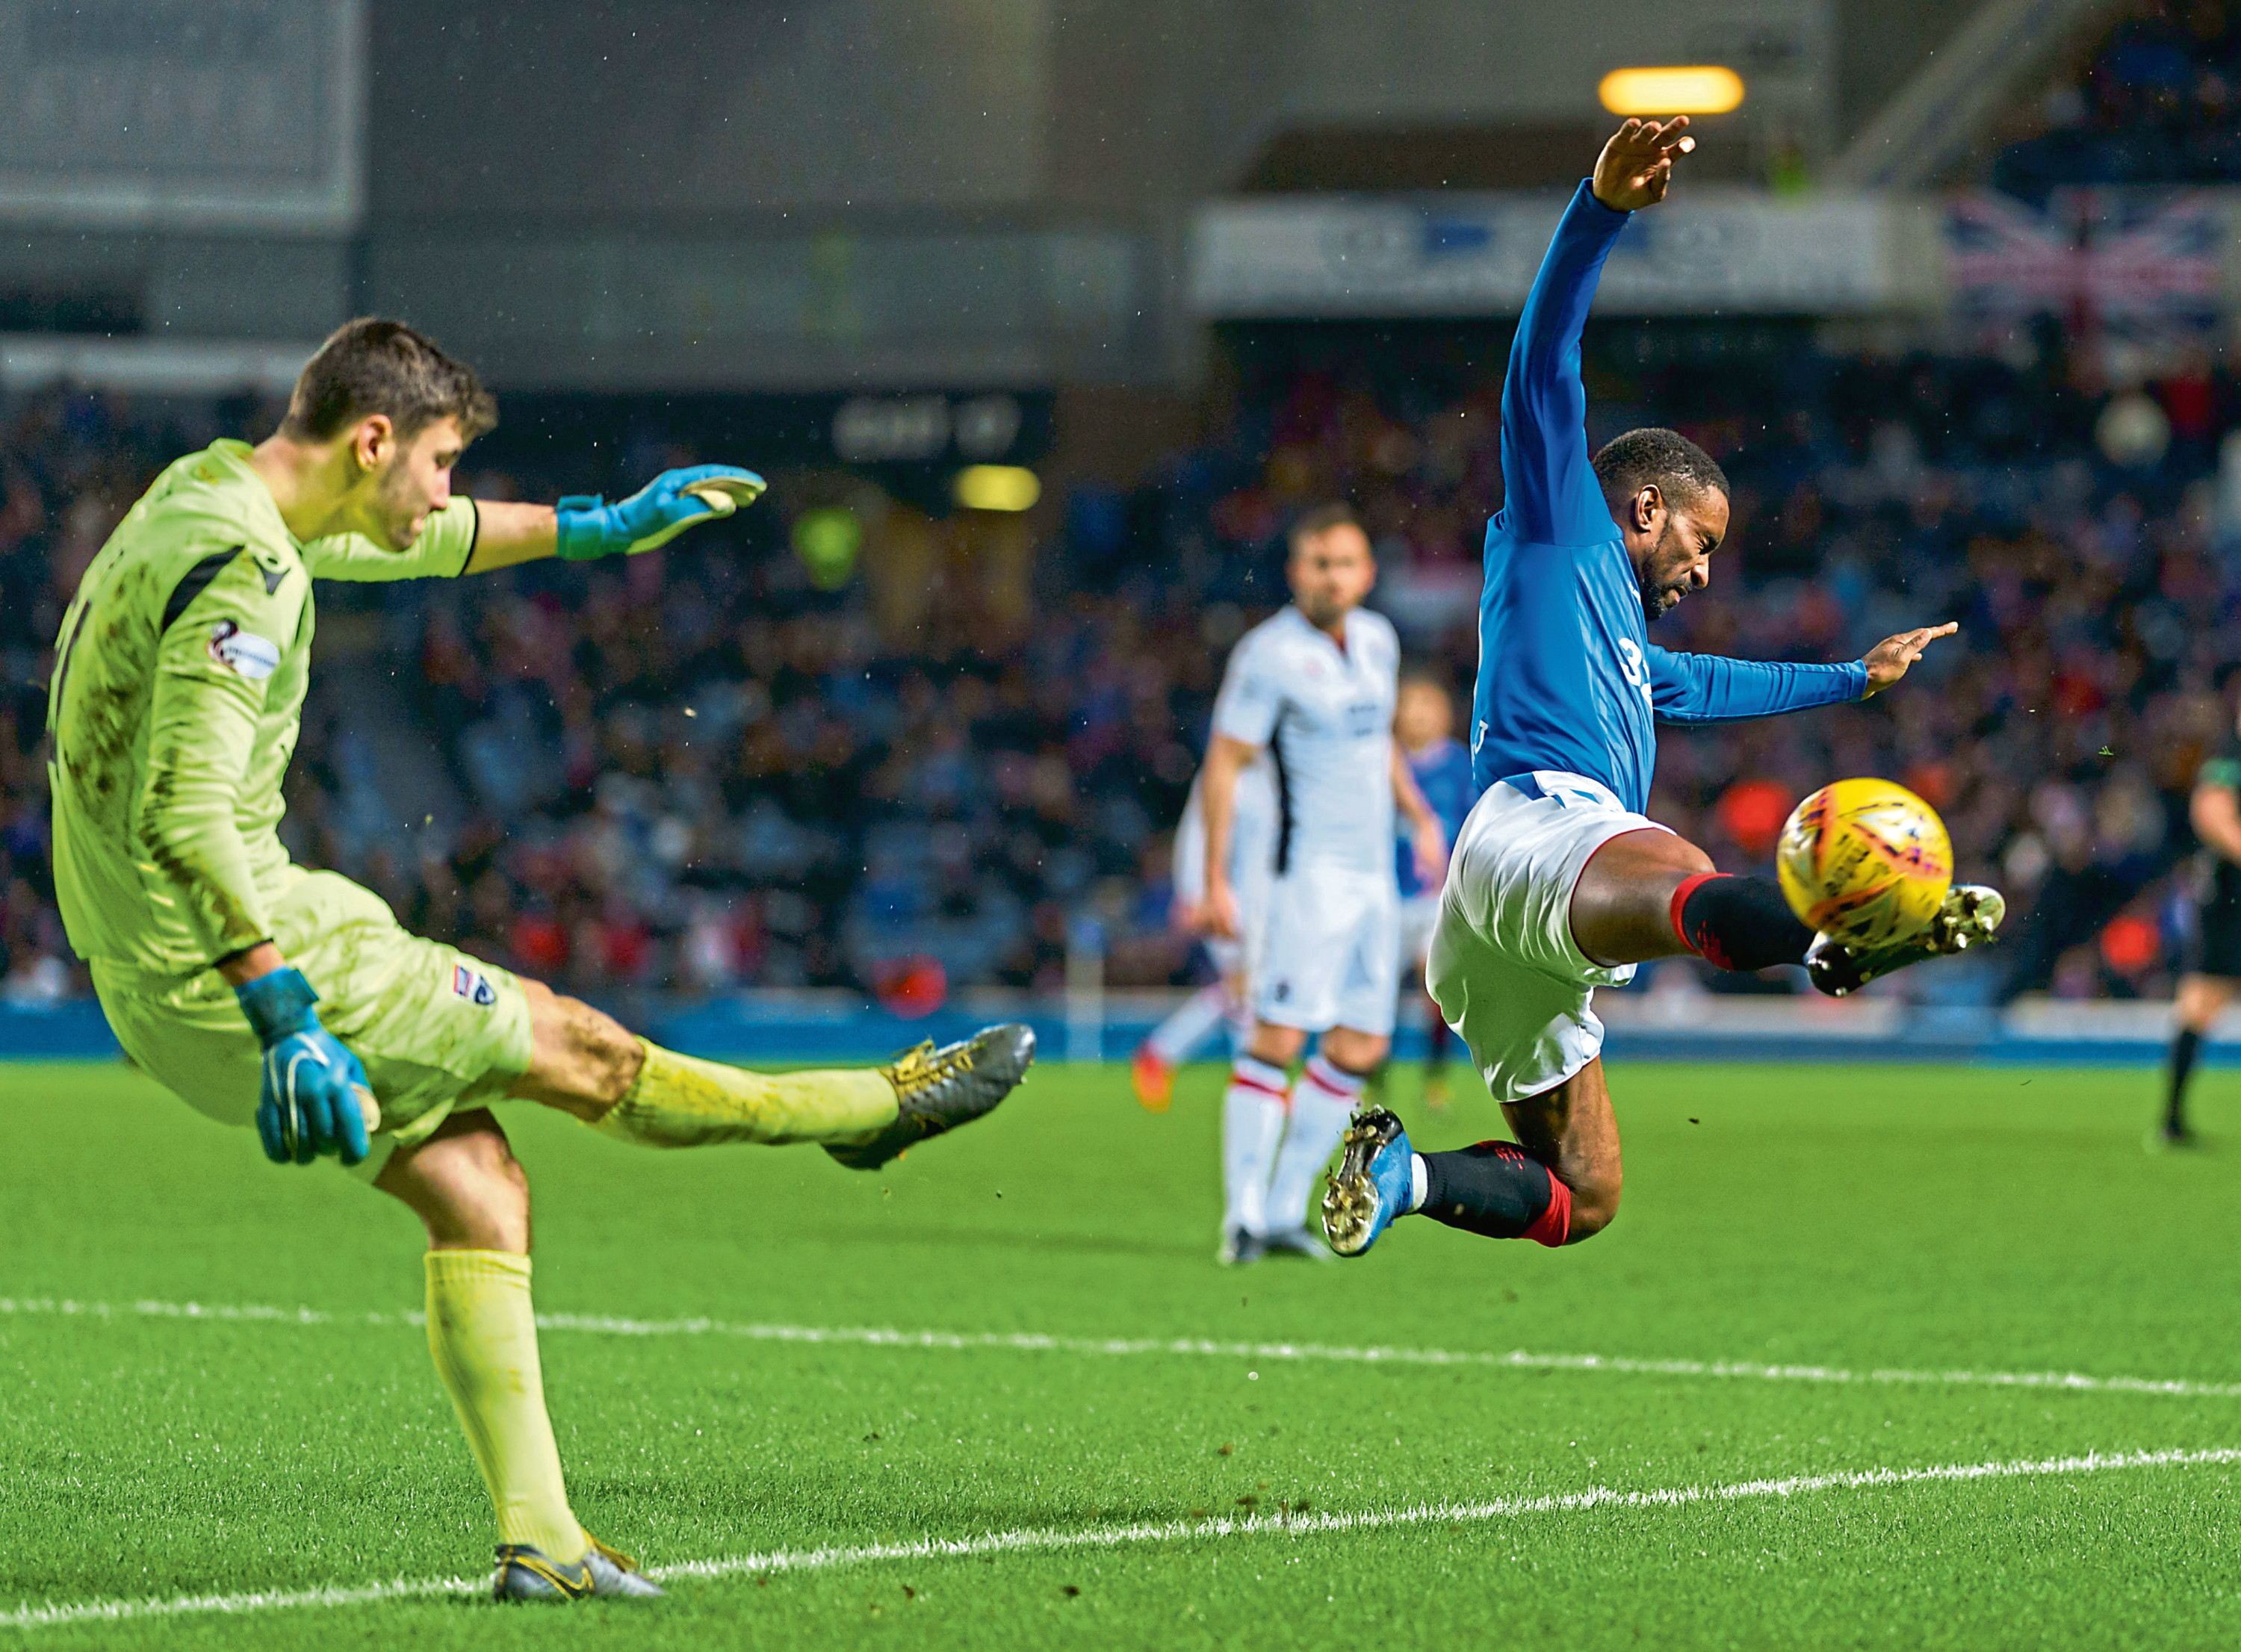 Jermain Defoe of Rangers tries to block a clearance from Ross County goalkeeper Nathan Baxter.